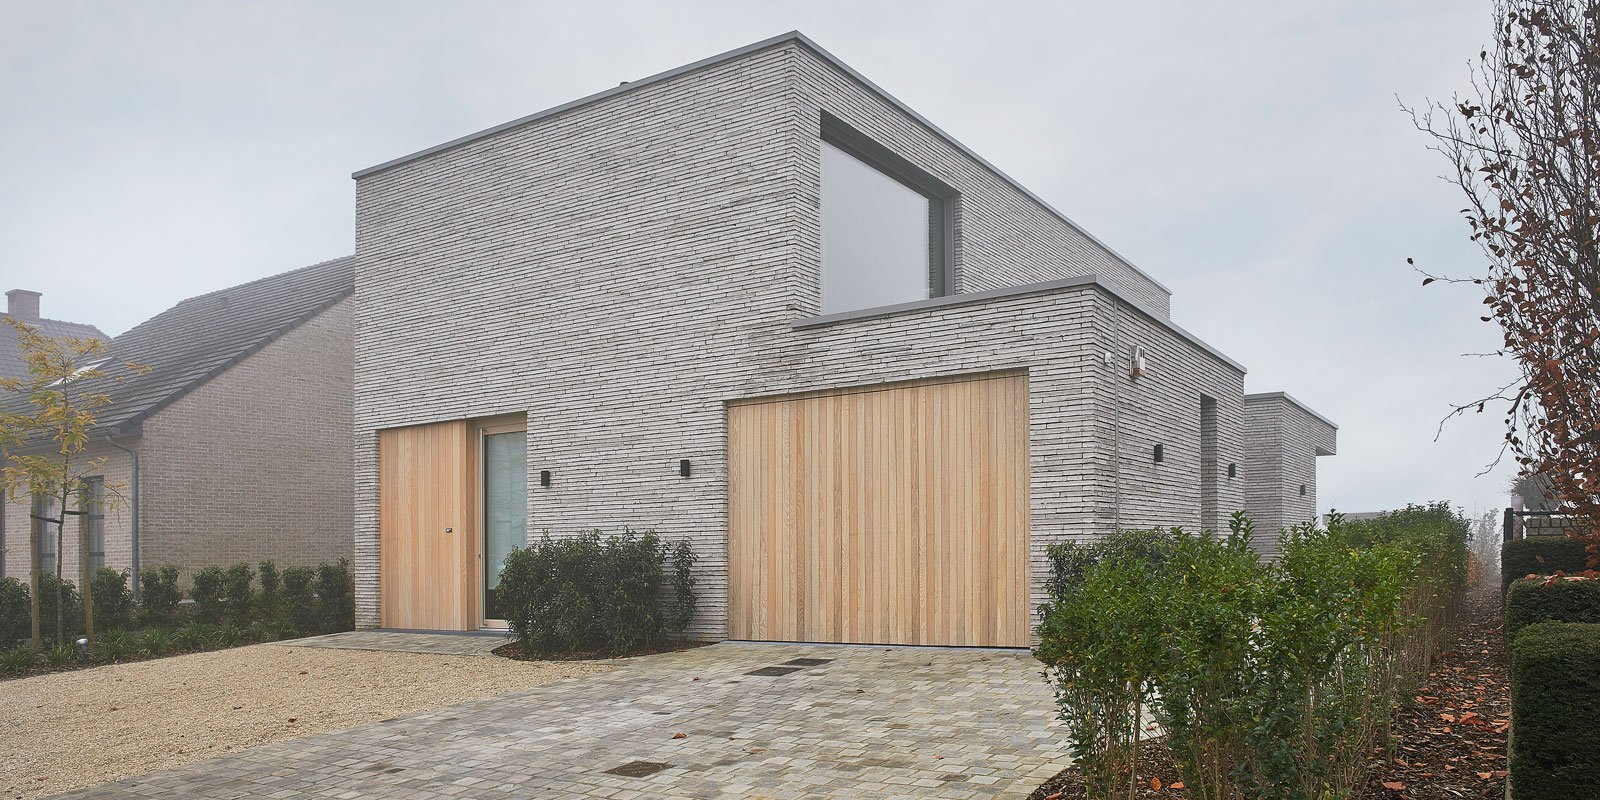 Houtskeletbouw woning, Collective4 Architects, the art of living